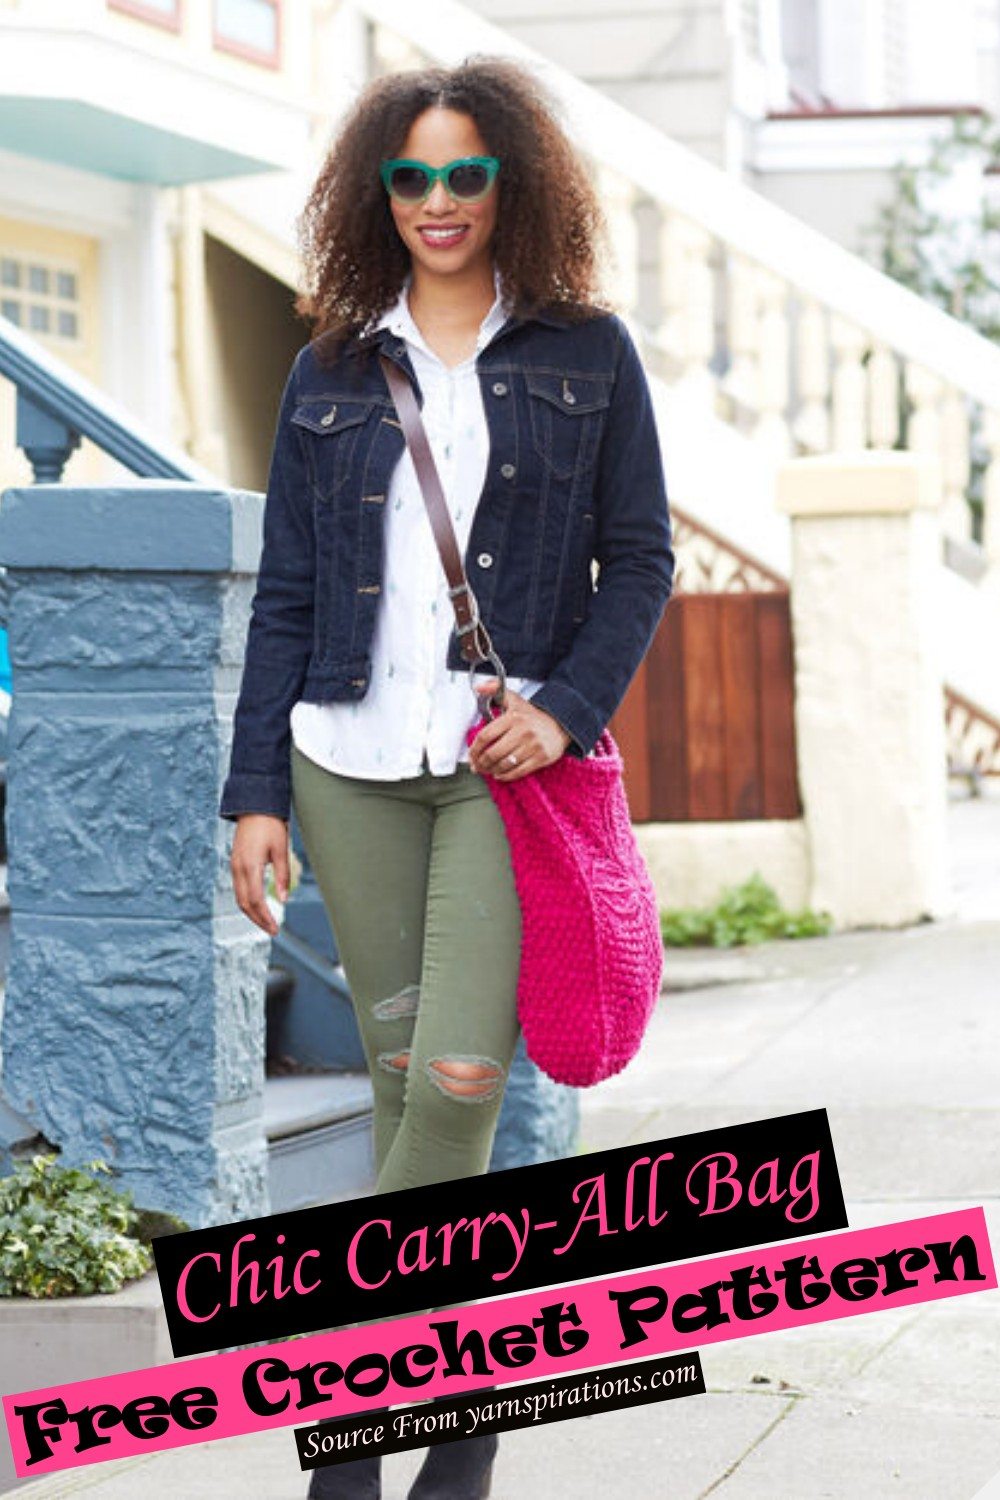 Chic Carry-All Bag Crochet Pattern